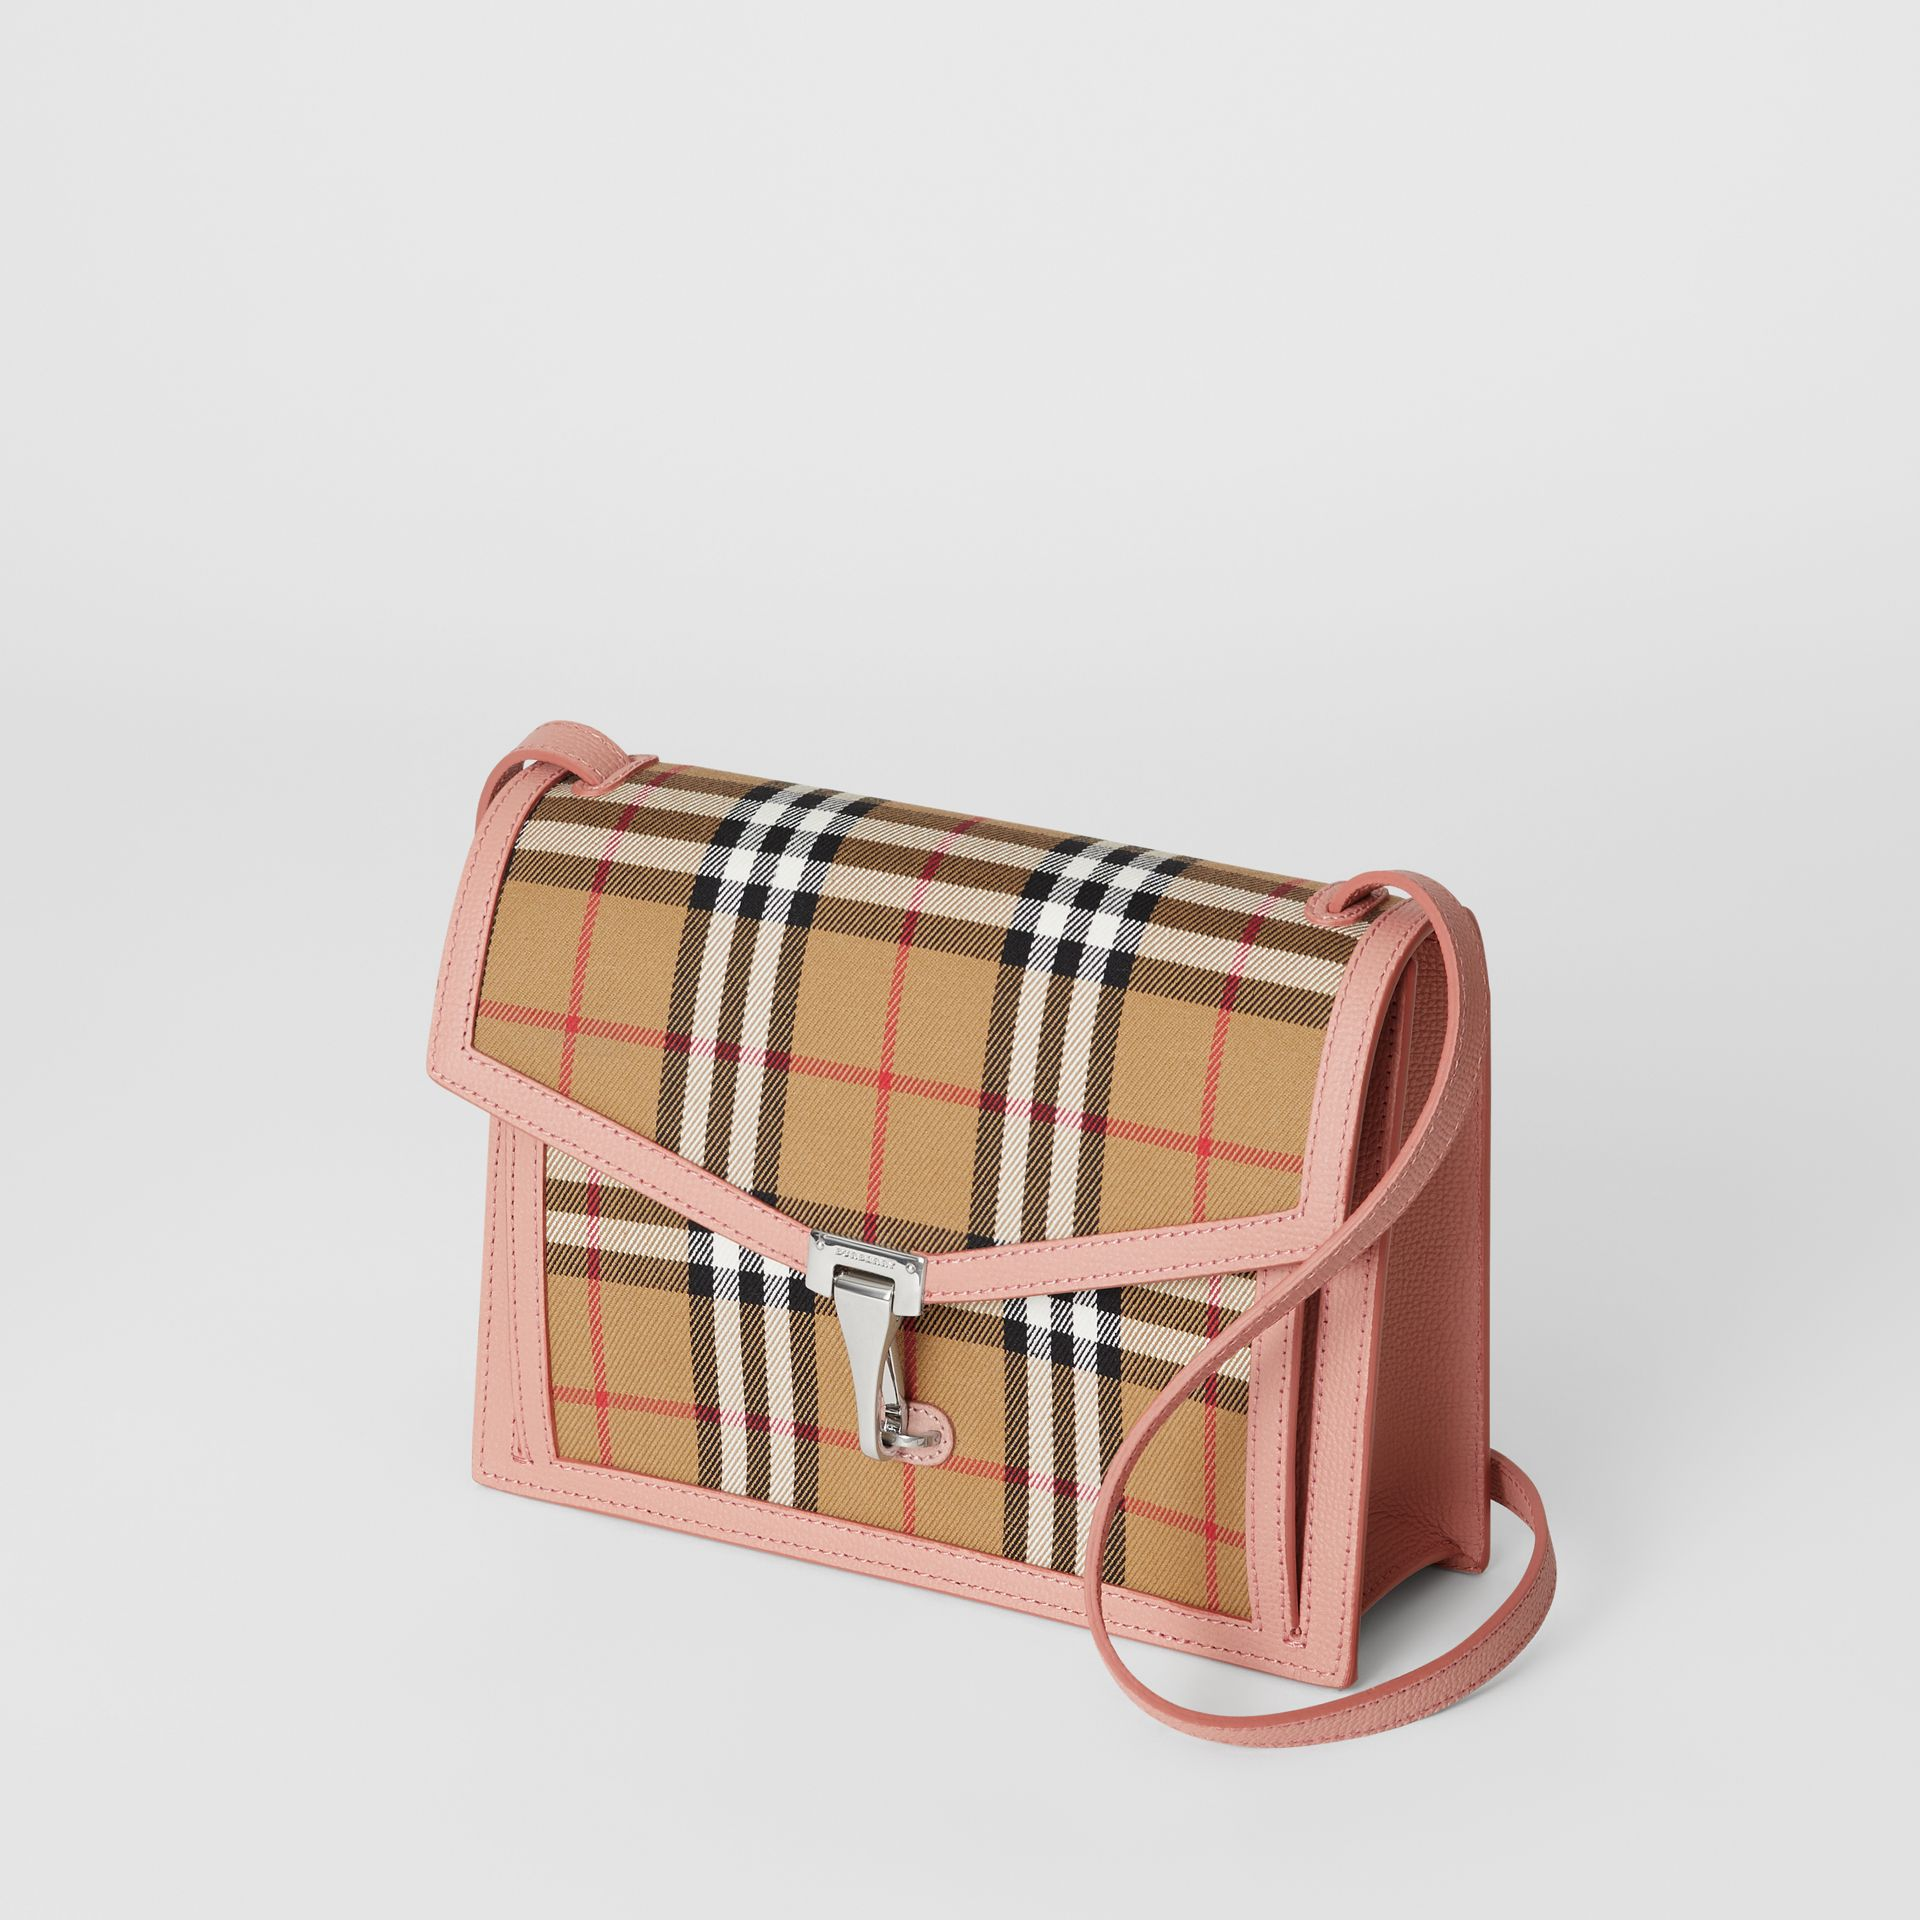 Small Vintage Check and Leather Crossbody Bag in Ash Rose - Women | Burberry United Kingdom - gallery image 4